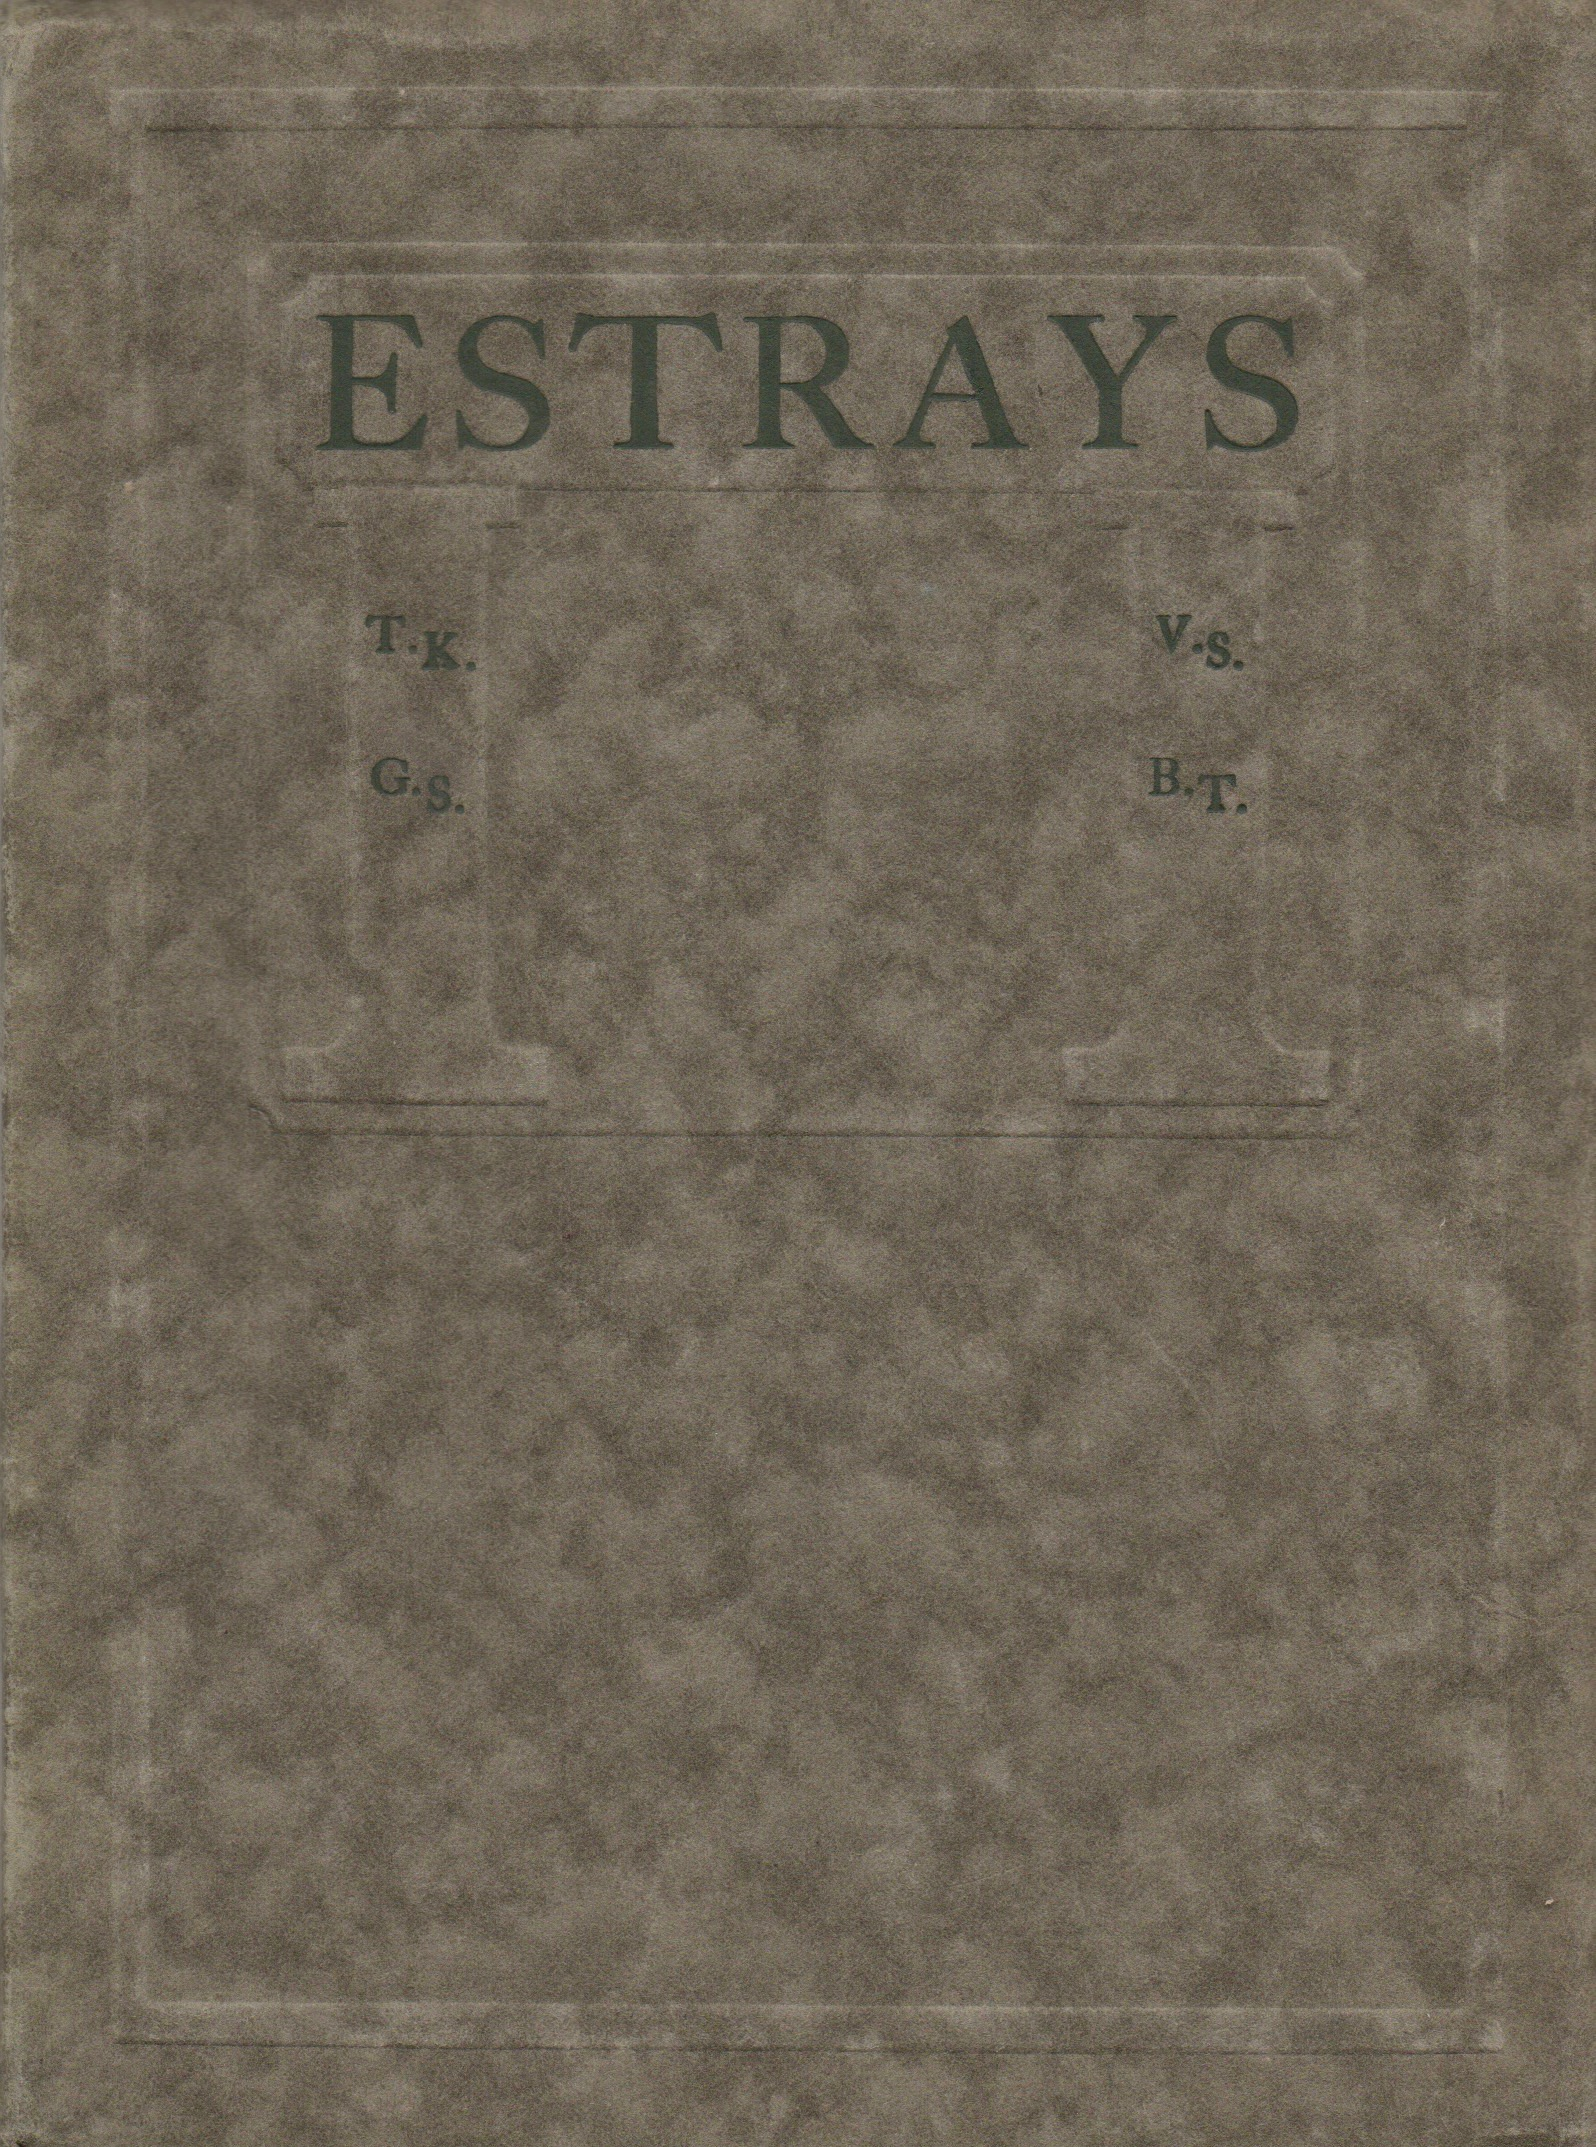 """The cover to the rare first edition of Estrays, the work of four """"up and coming"""" Chicago poets, published in December 1918 at The Camelot Press in Chicago. The initials of the four poets are on the cover: Thomas Kennedy, George Seymour, Vincent Starrett, and Basil Thompson. There were only 250 printed."""